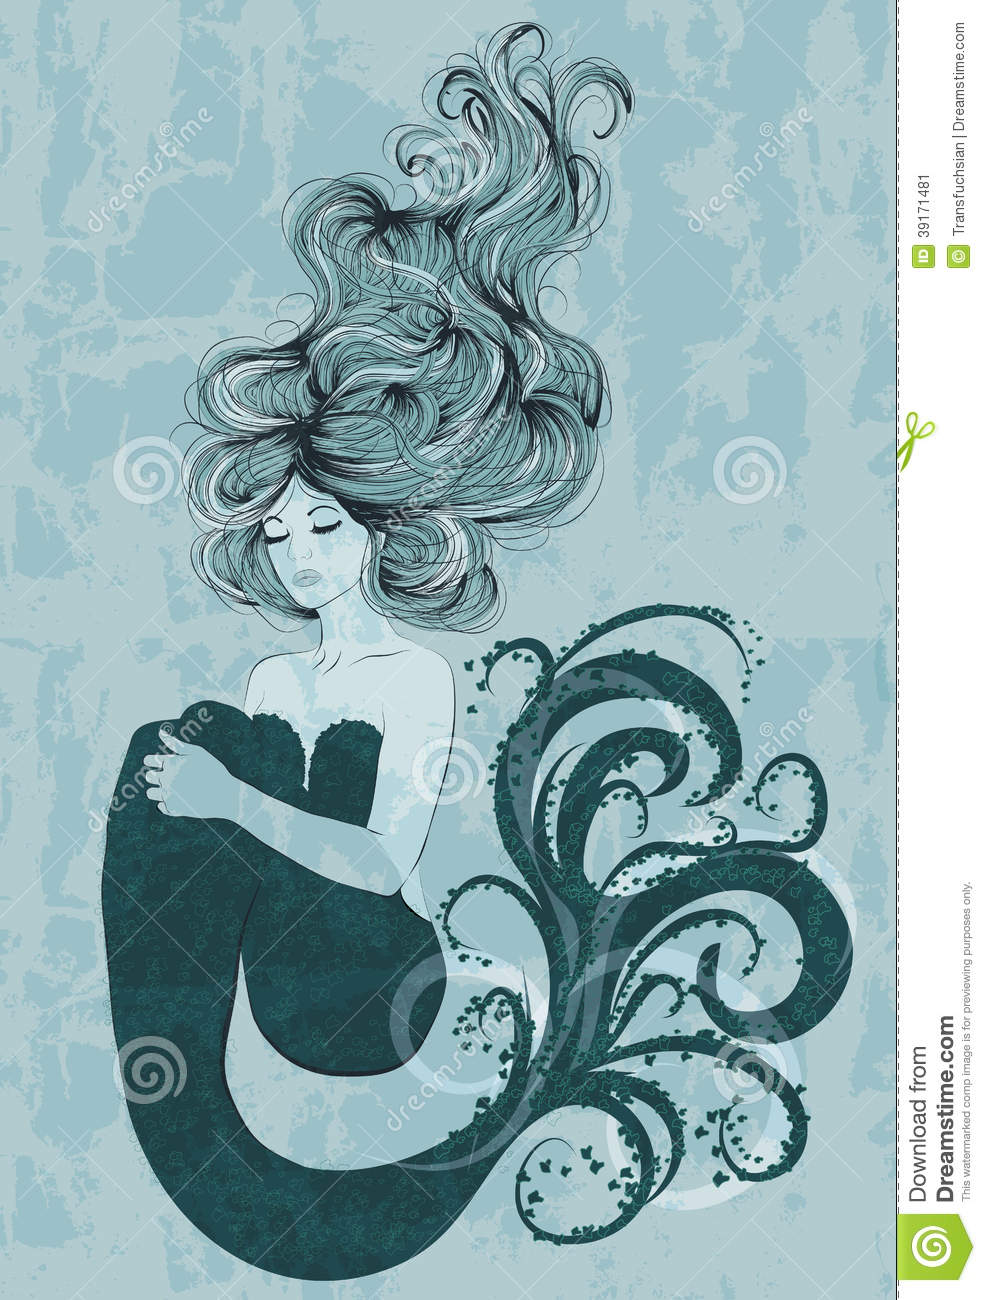 mermaid floating in water stock vector image of mermaid 39171481. Black Bedroom Furniture Sets. Home Design Ideas